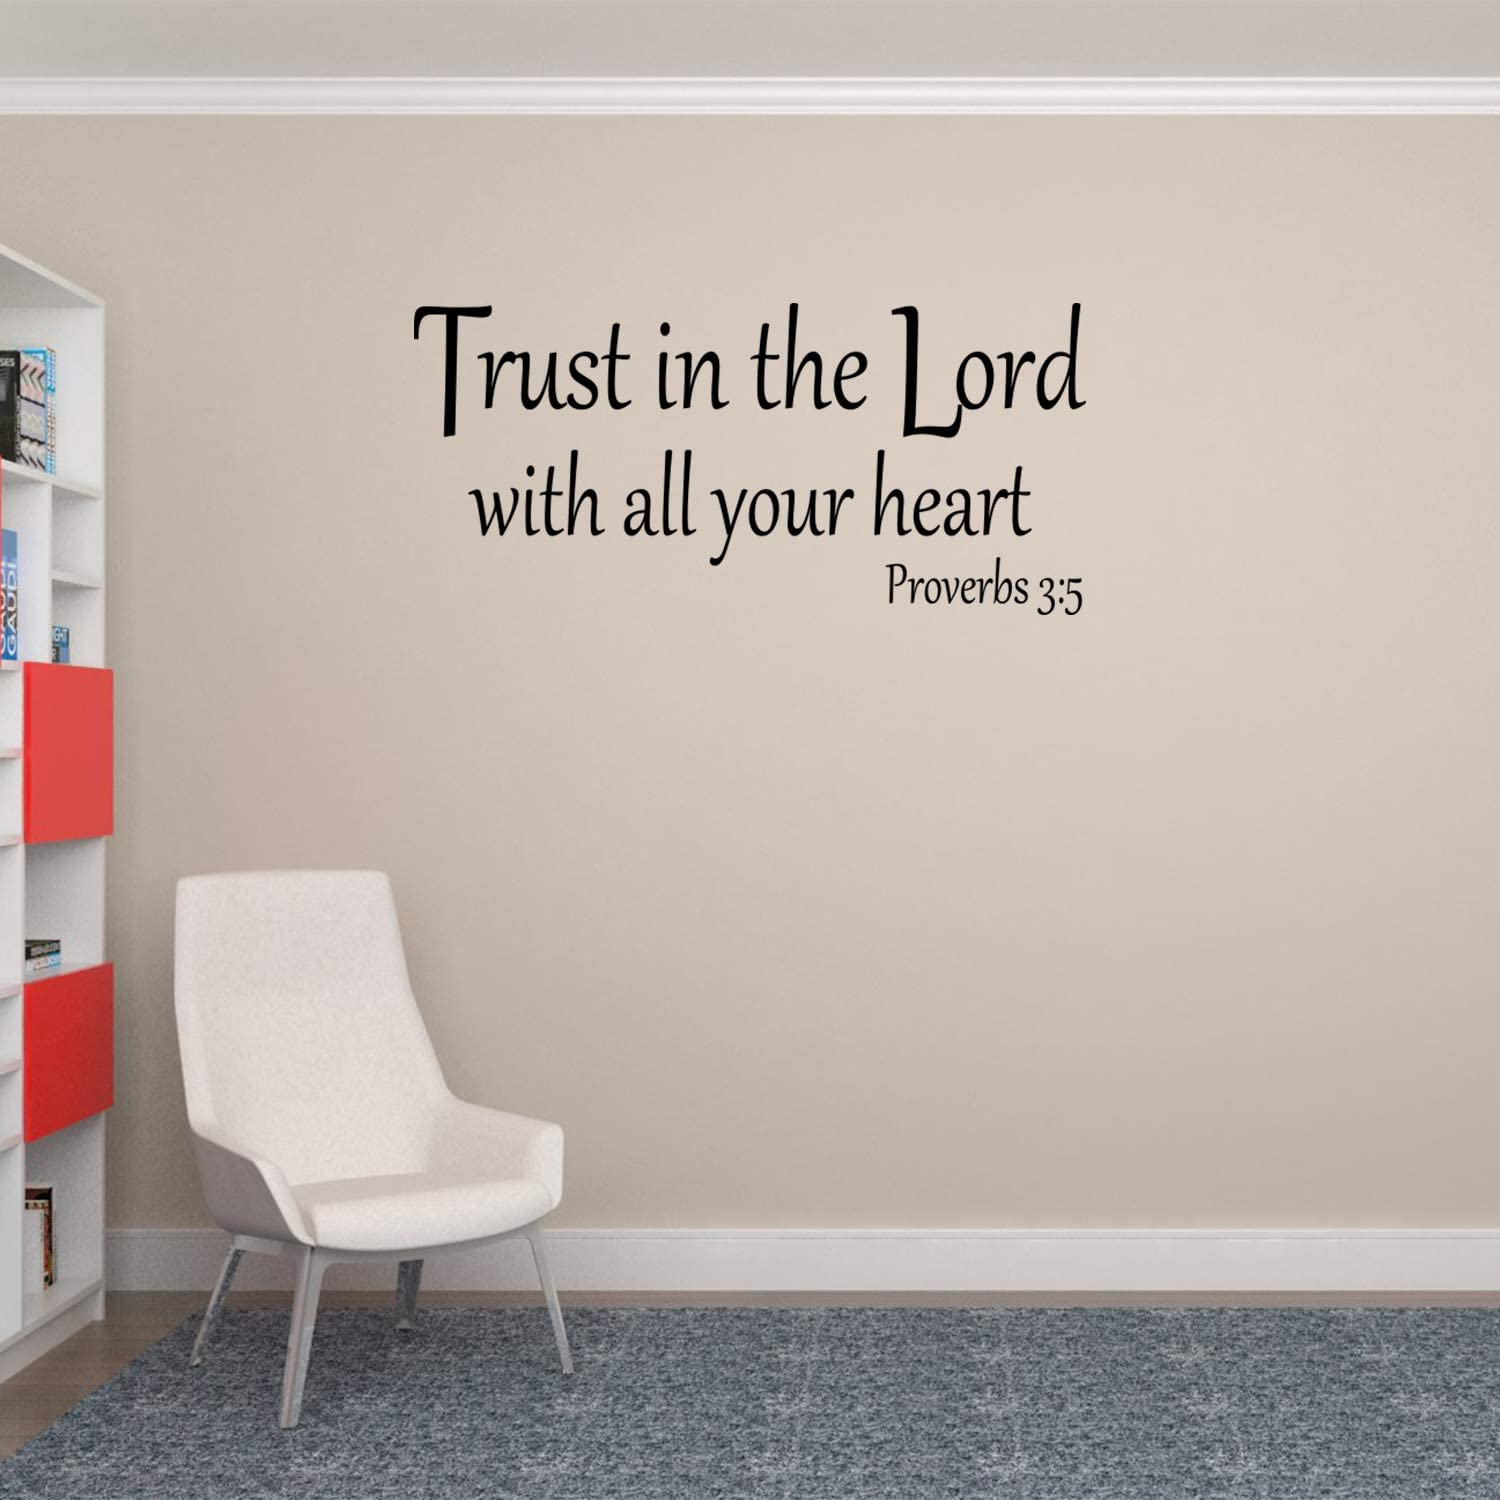 Empresal Wall Decal Quote Proverbs 3 5 Trust in The Lord with All Your Heart Wall Decal Bible Verse Sticker Decor